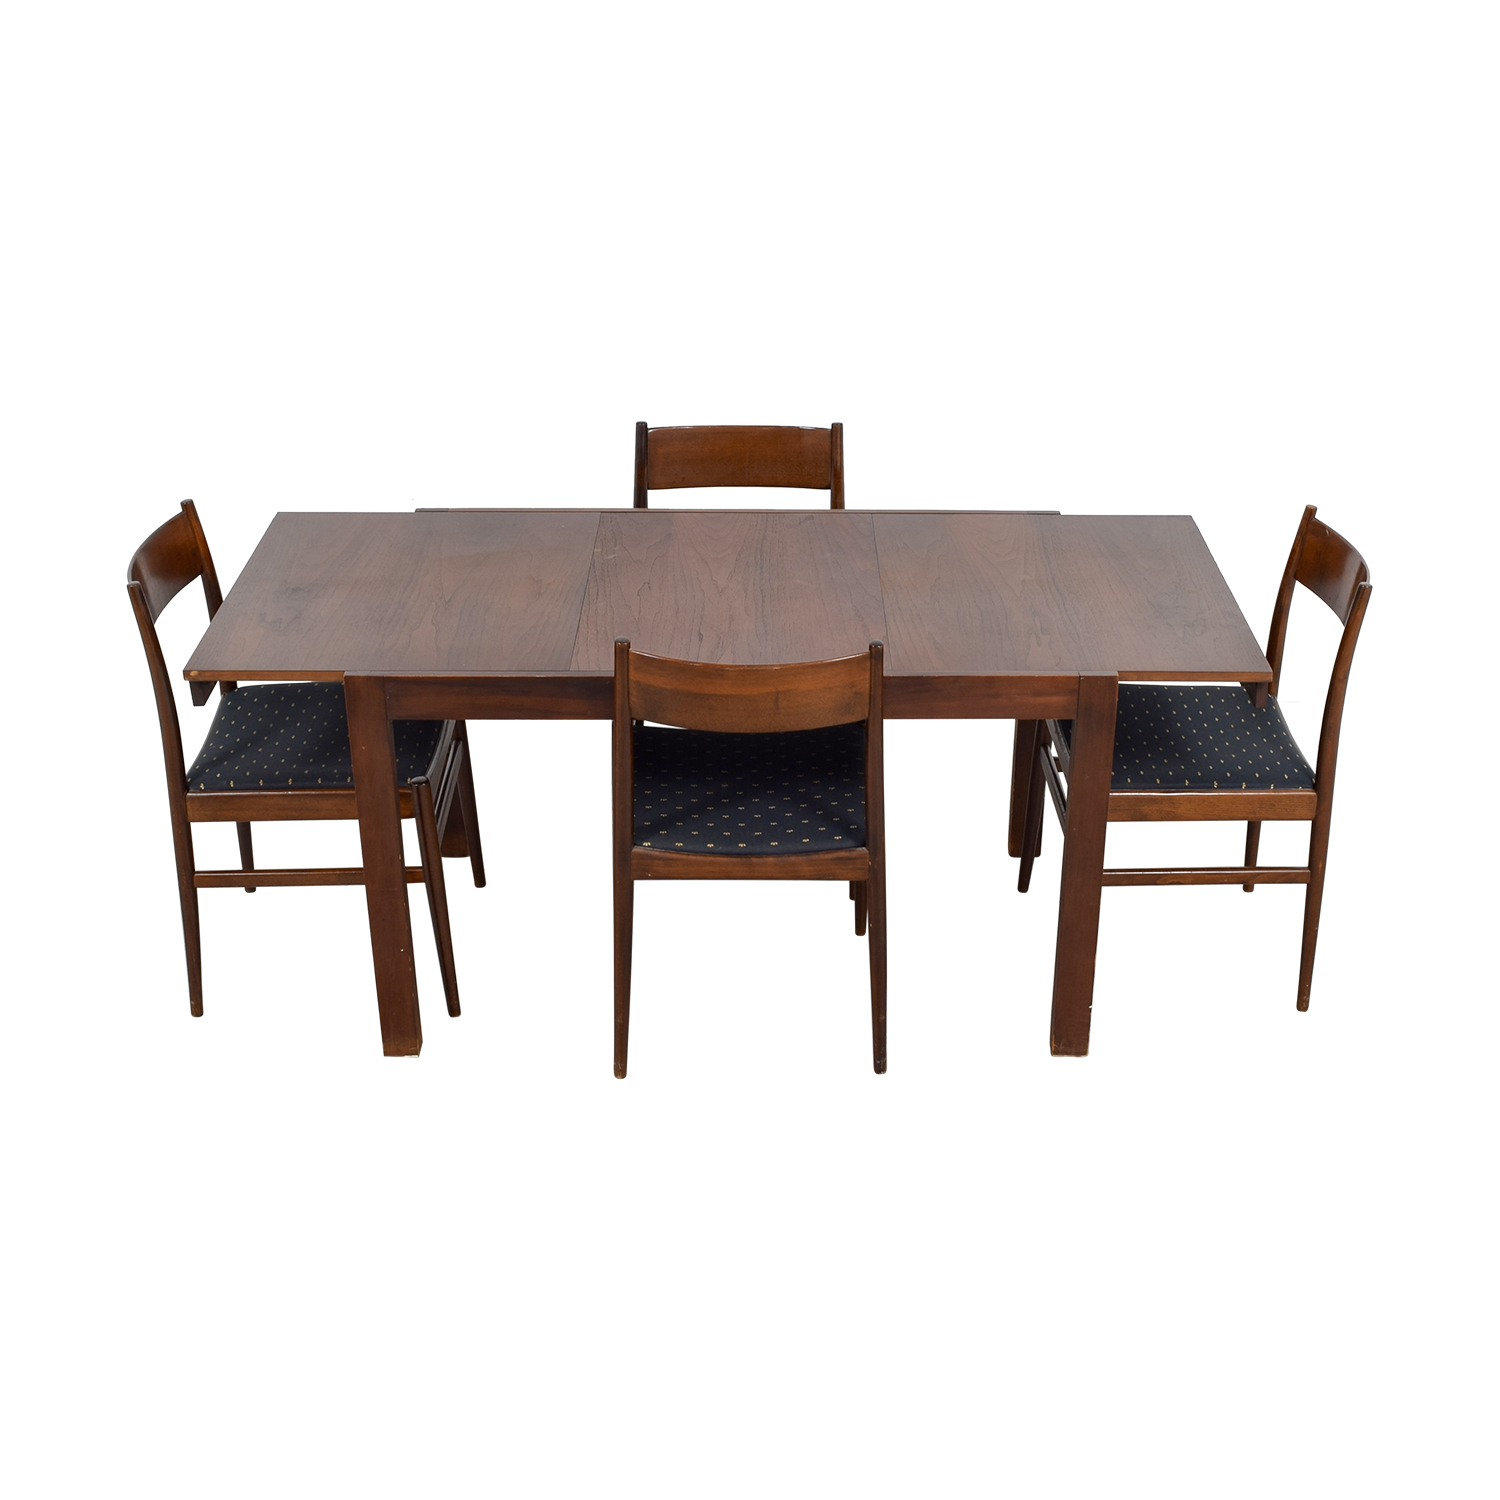 Extendable Wood Dining Set with Blue Seat Cushions second hand